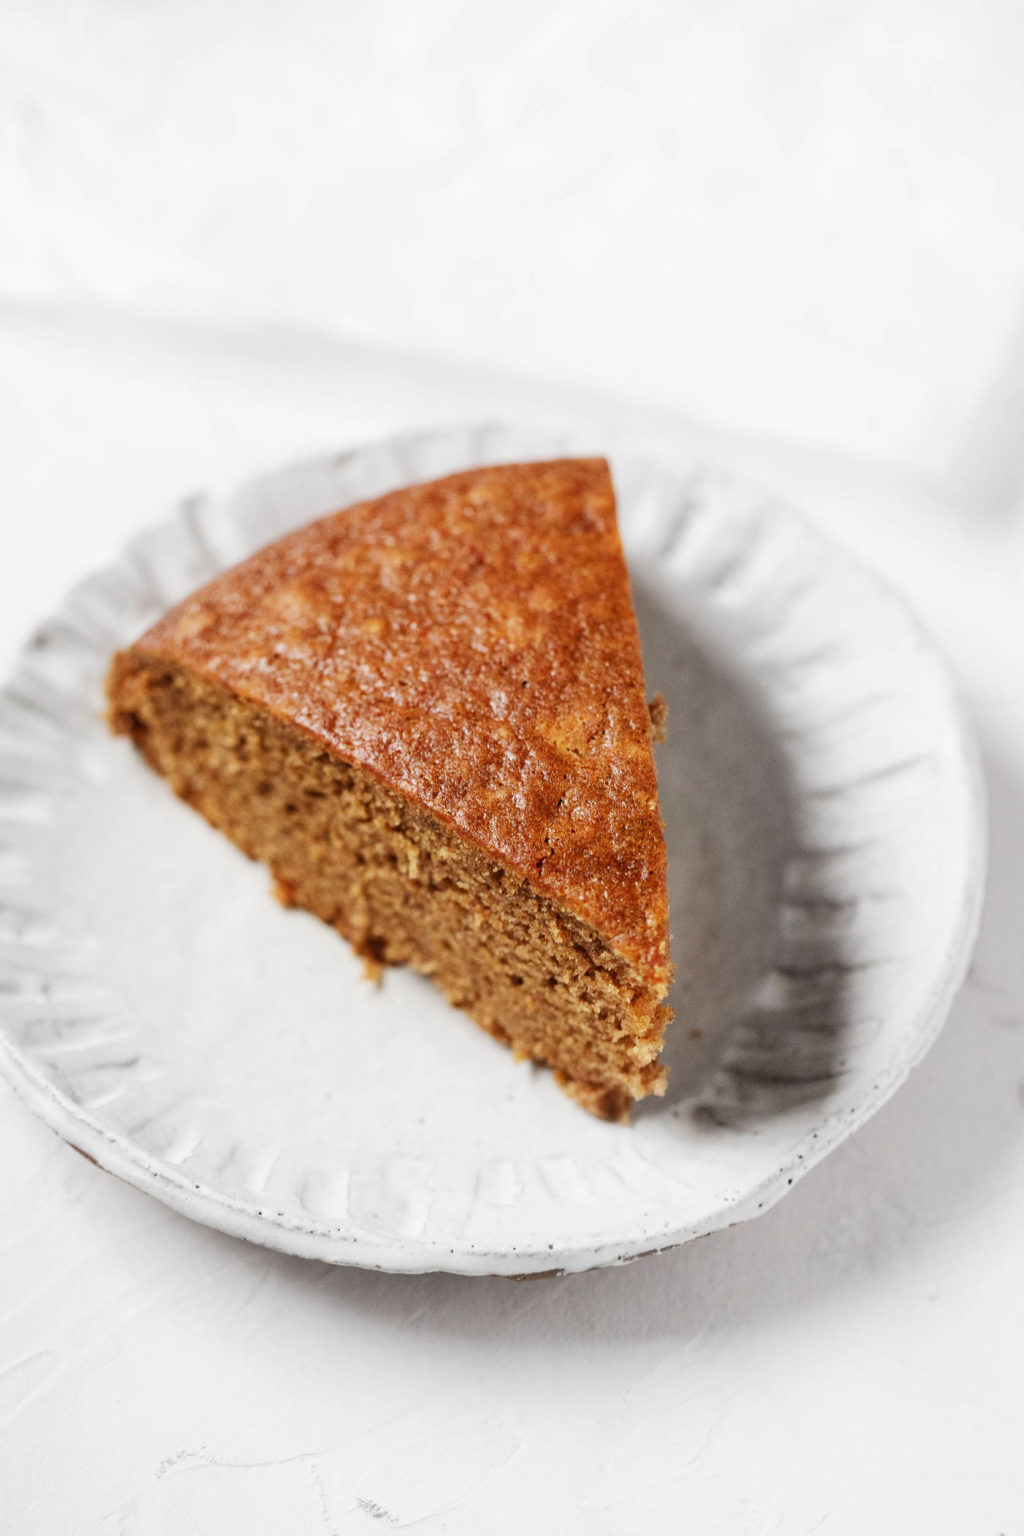 A golden brown slice of vegan gingerbread cake is laid out on a small dessert plate.